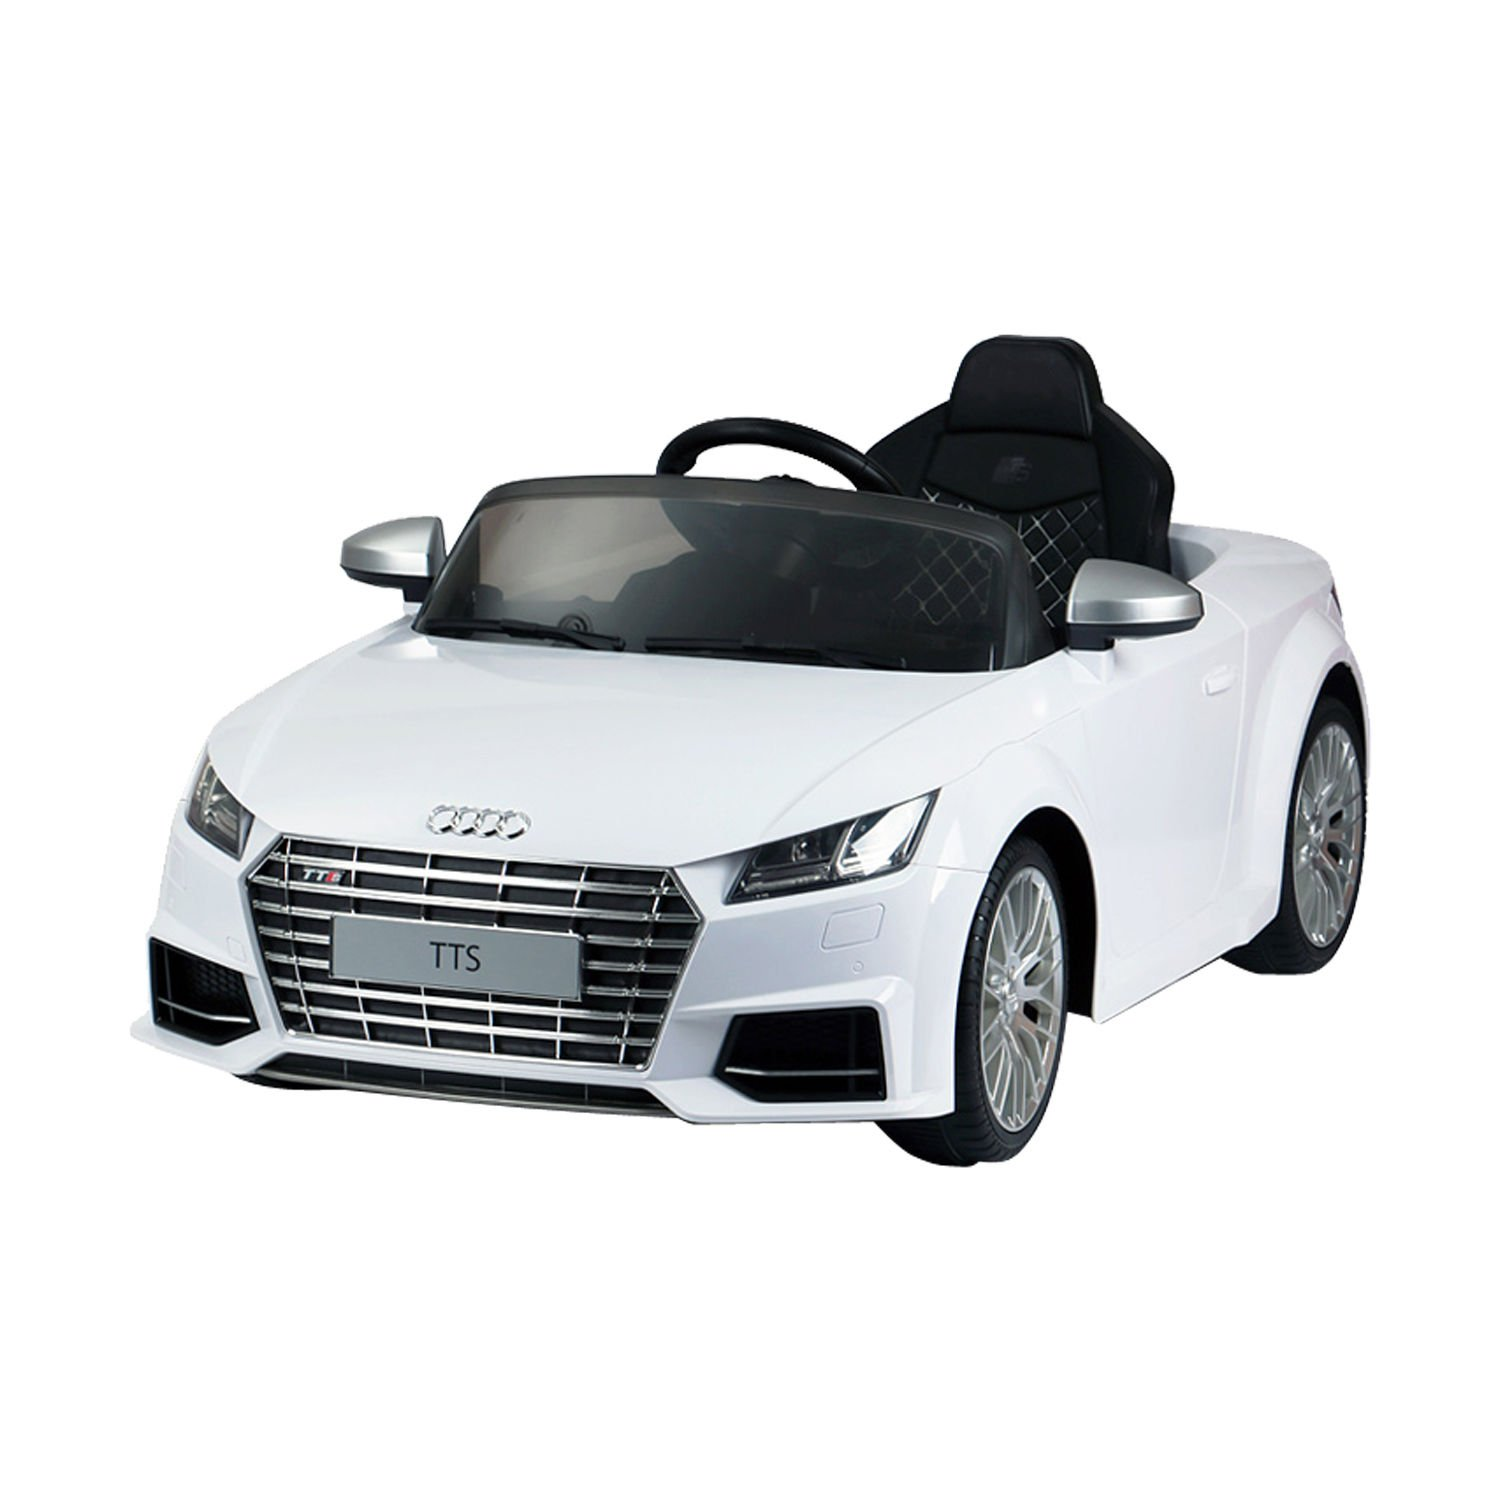 Amazoncom Audi V Kids Electric RideOn Car With Remote Control - Audi remote control car